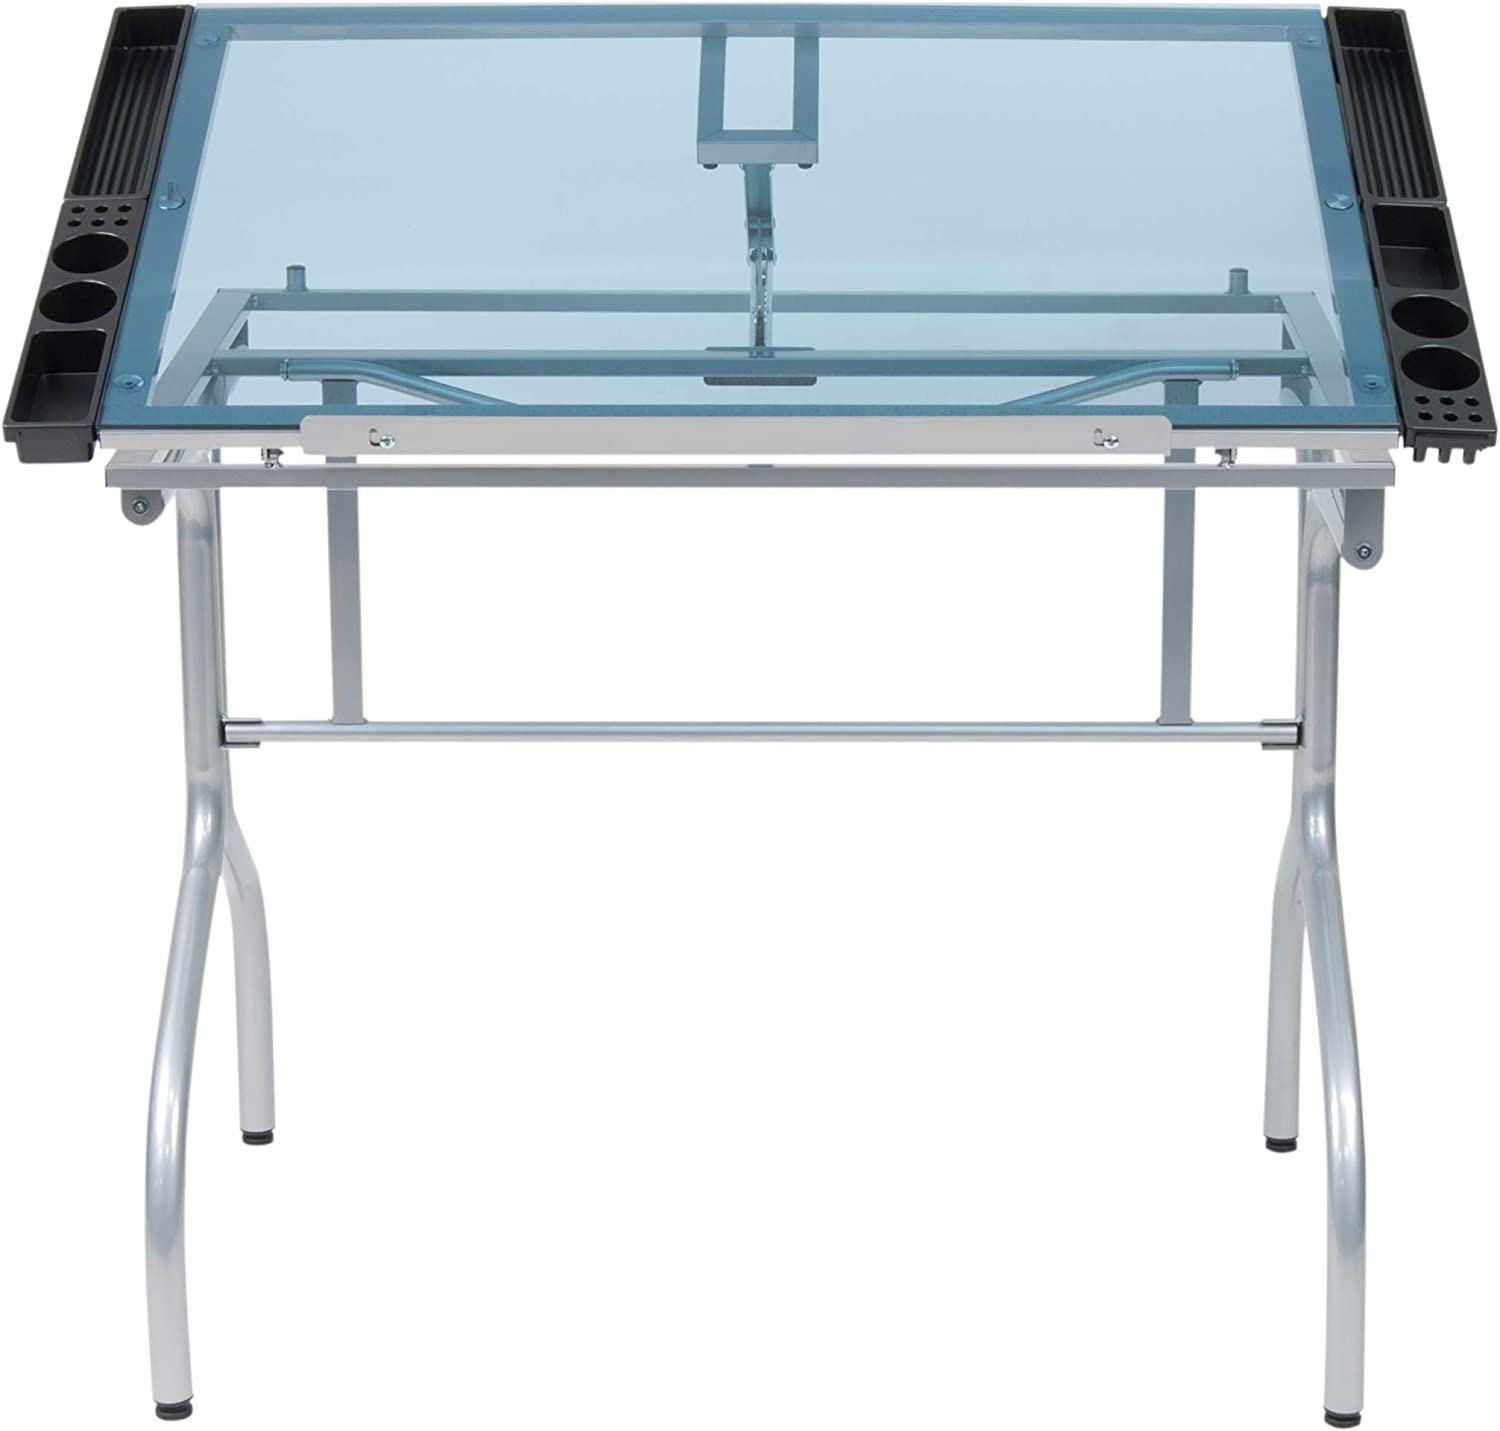 "Studio Designs Folding Modern Glass Top Adjustable Drafting Table Craft Table Drawing Desk Hobby Table Writing Desk Studio Desk, 35.25"" W x 23.75"" D, Silver / Blue Glass"